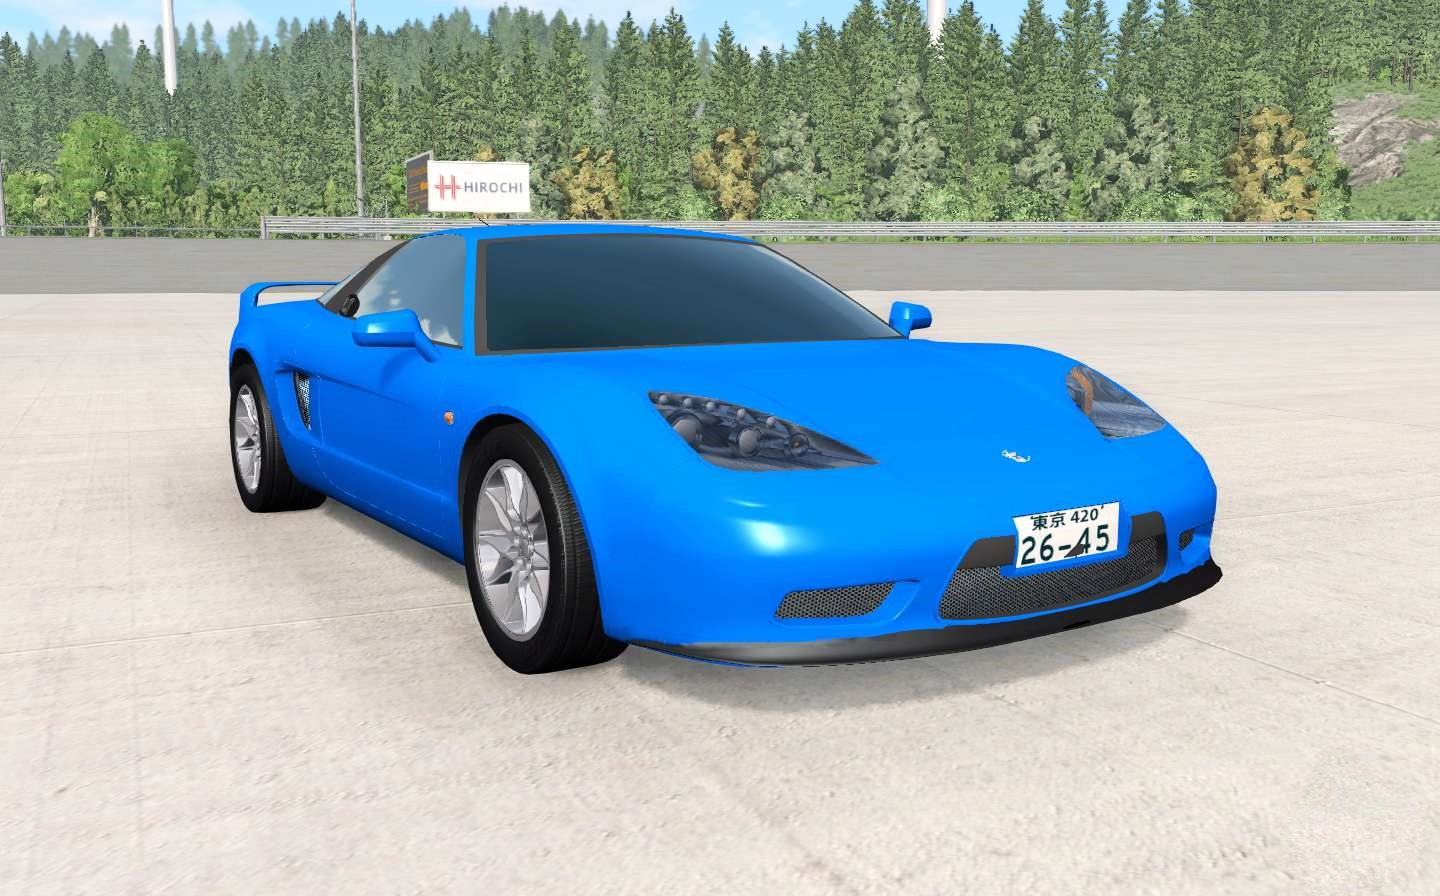 BeamNG - Camso Trail-X NS Car Mod